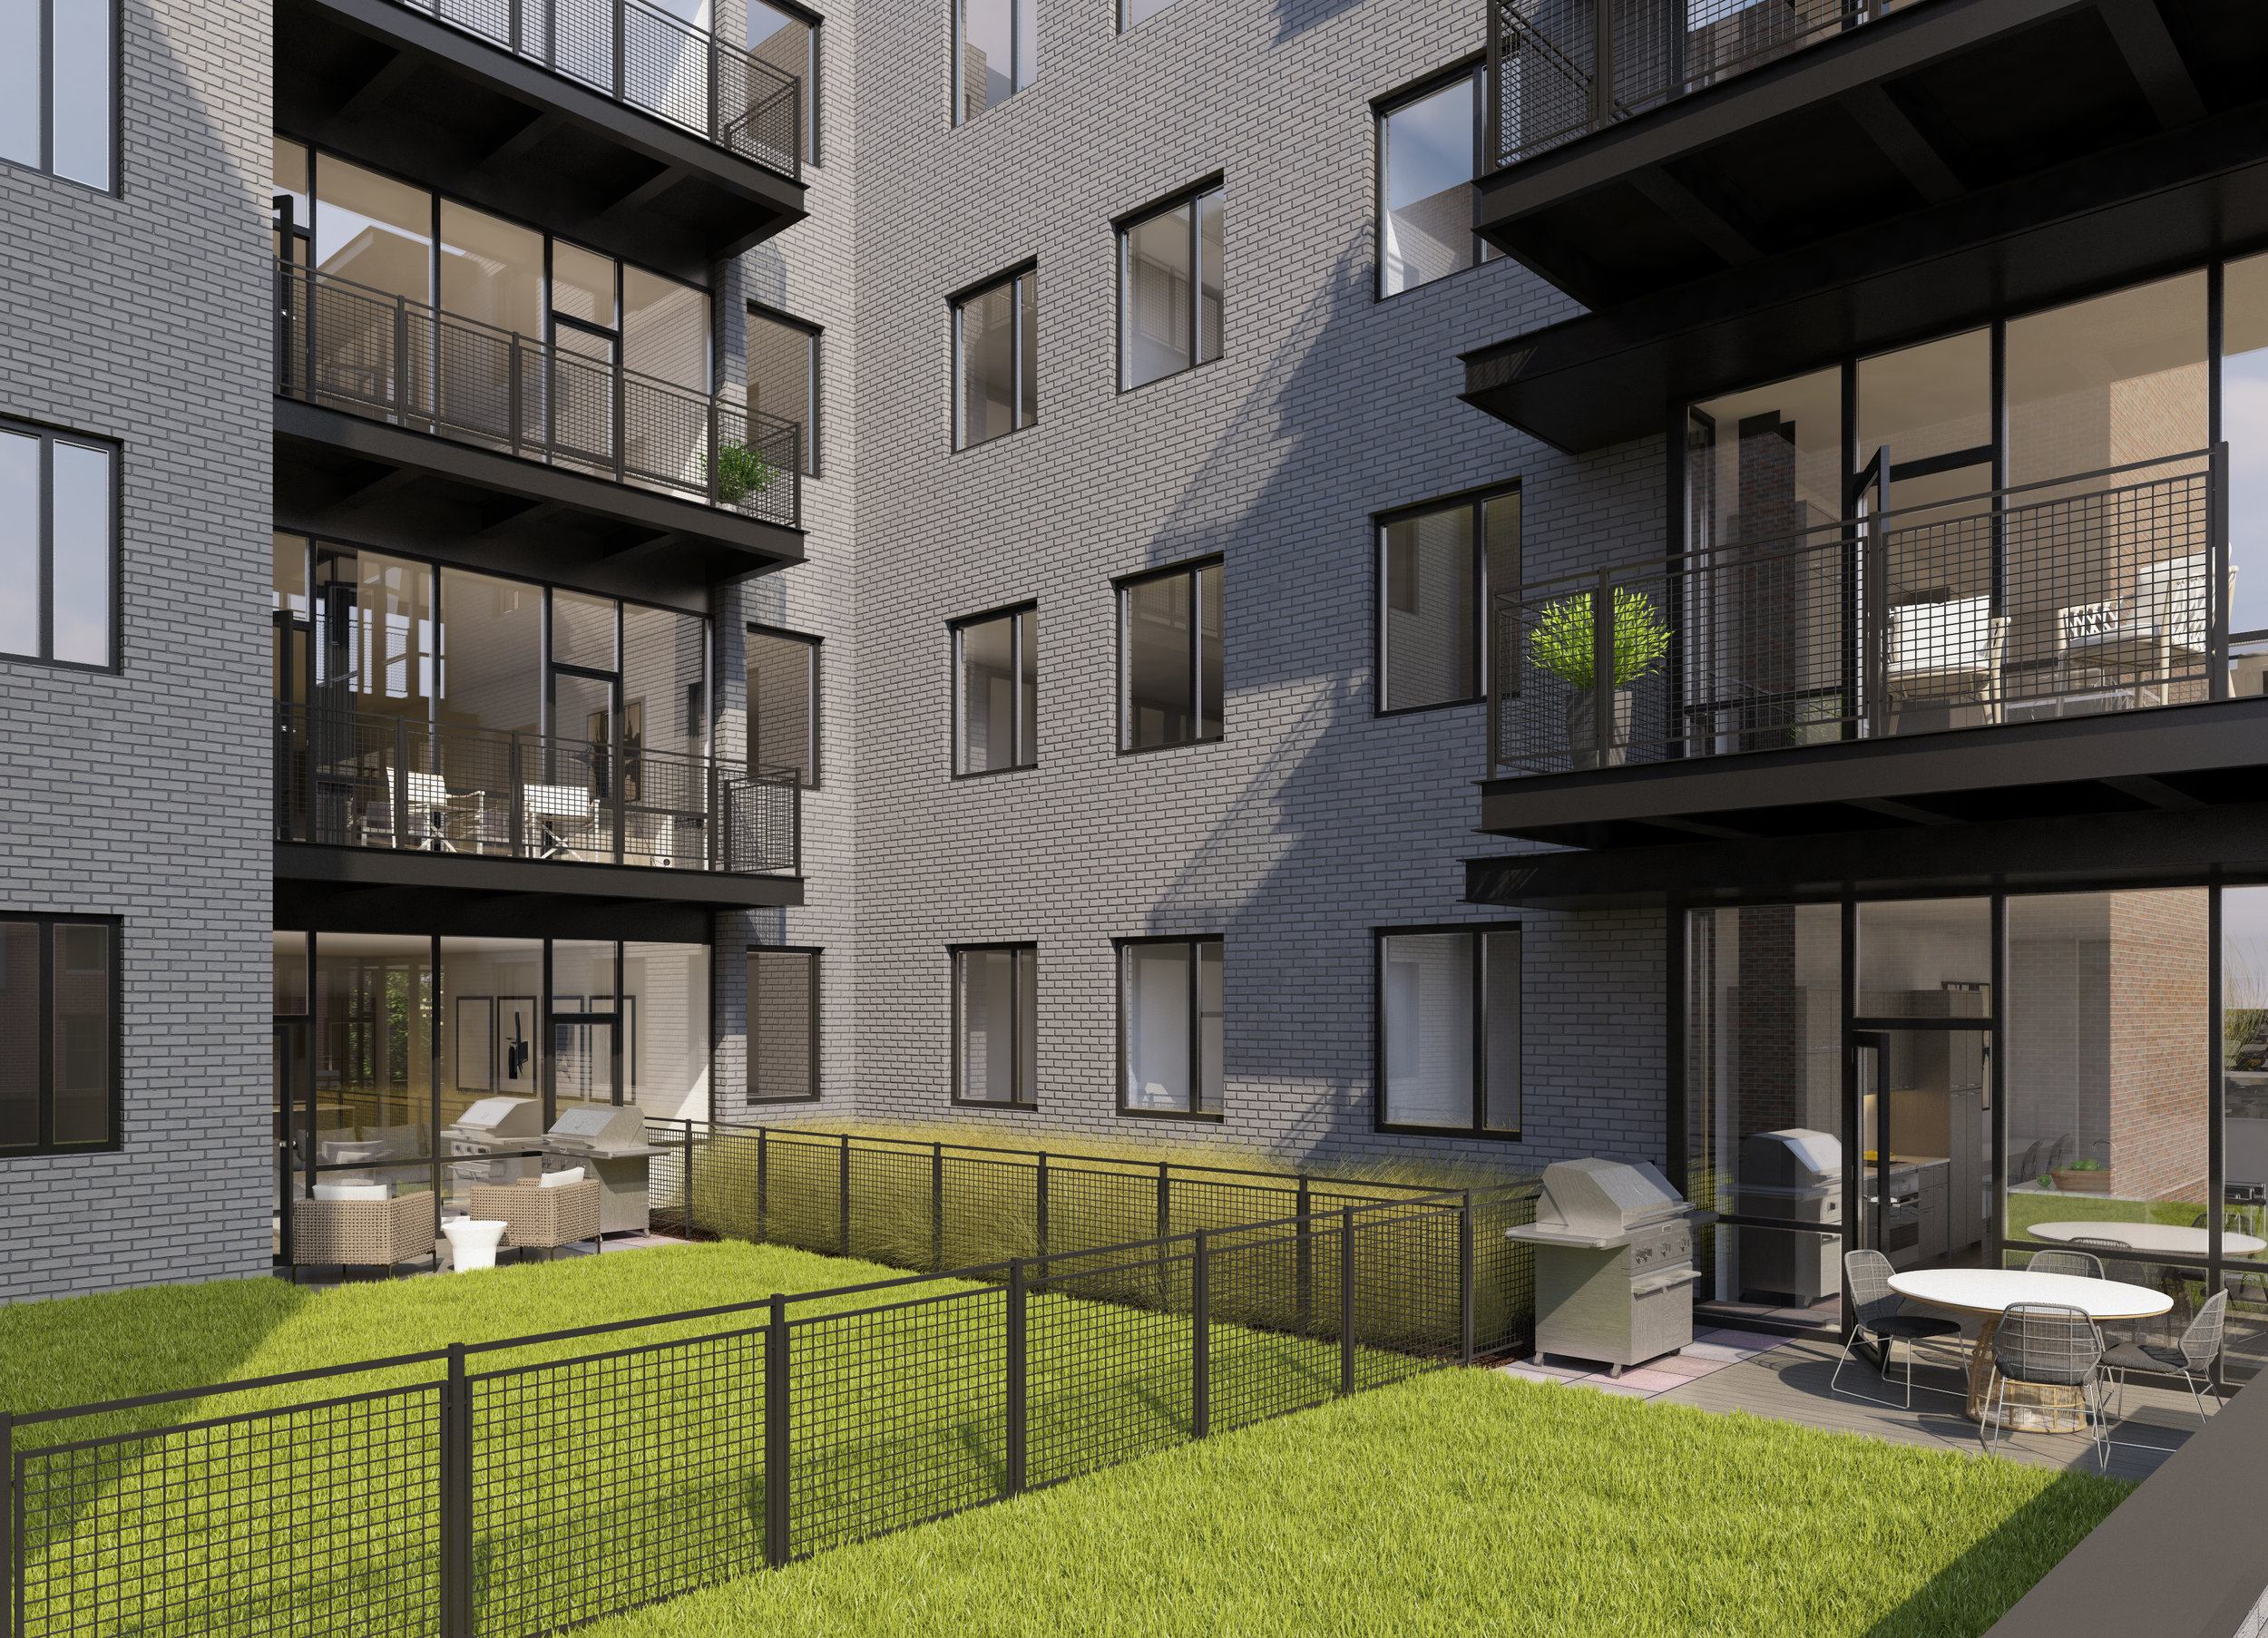 The terrace level delivers private outdoor green roof space to Units 201, 204, 205, 206 and 207